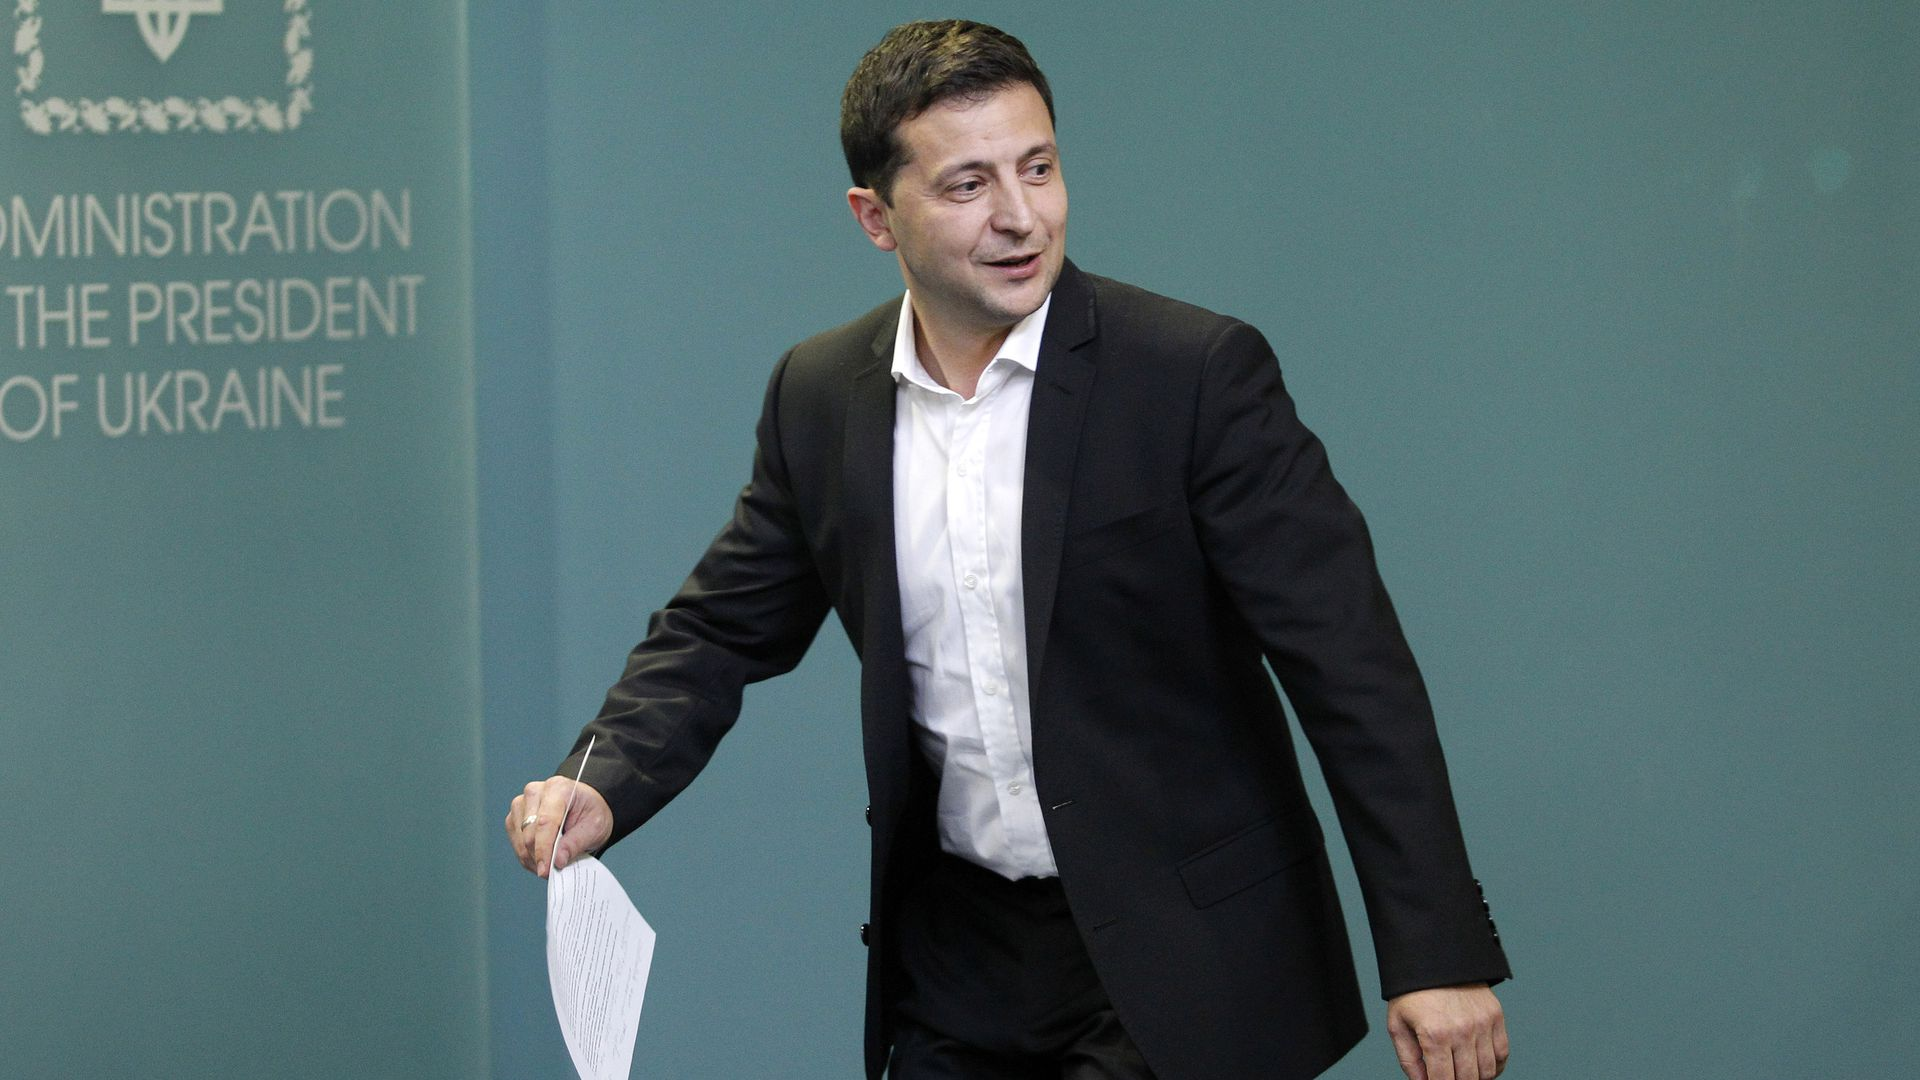 In this image, Zelensky walks while holding a piece of paper.